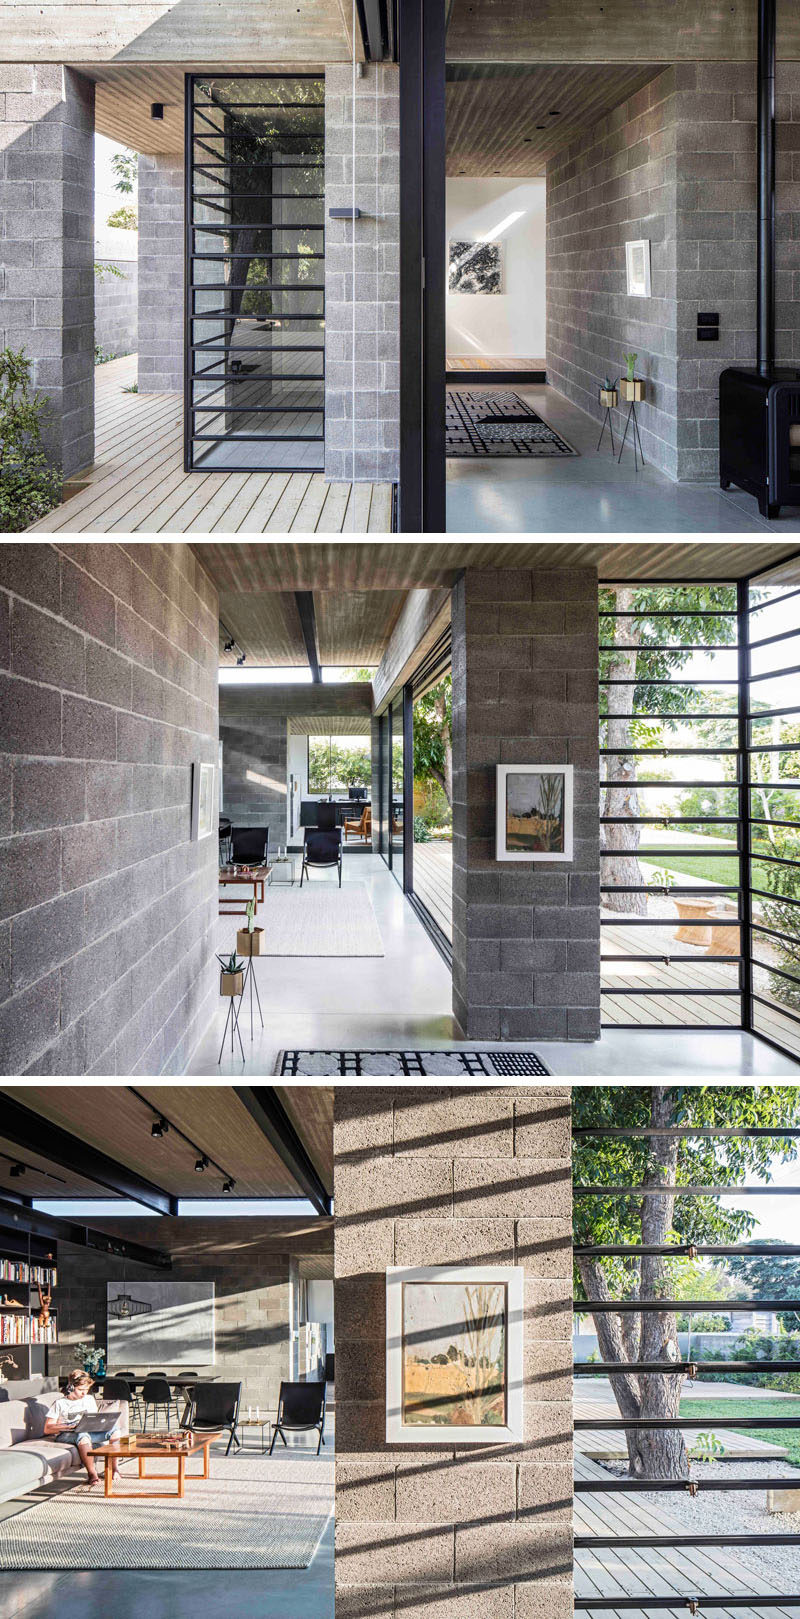 This modern house is made from concrete blocks and a concrete roof, that both work well with the black window frames.